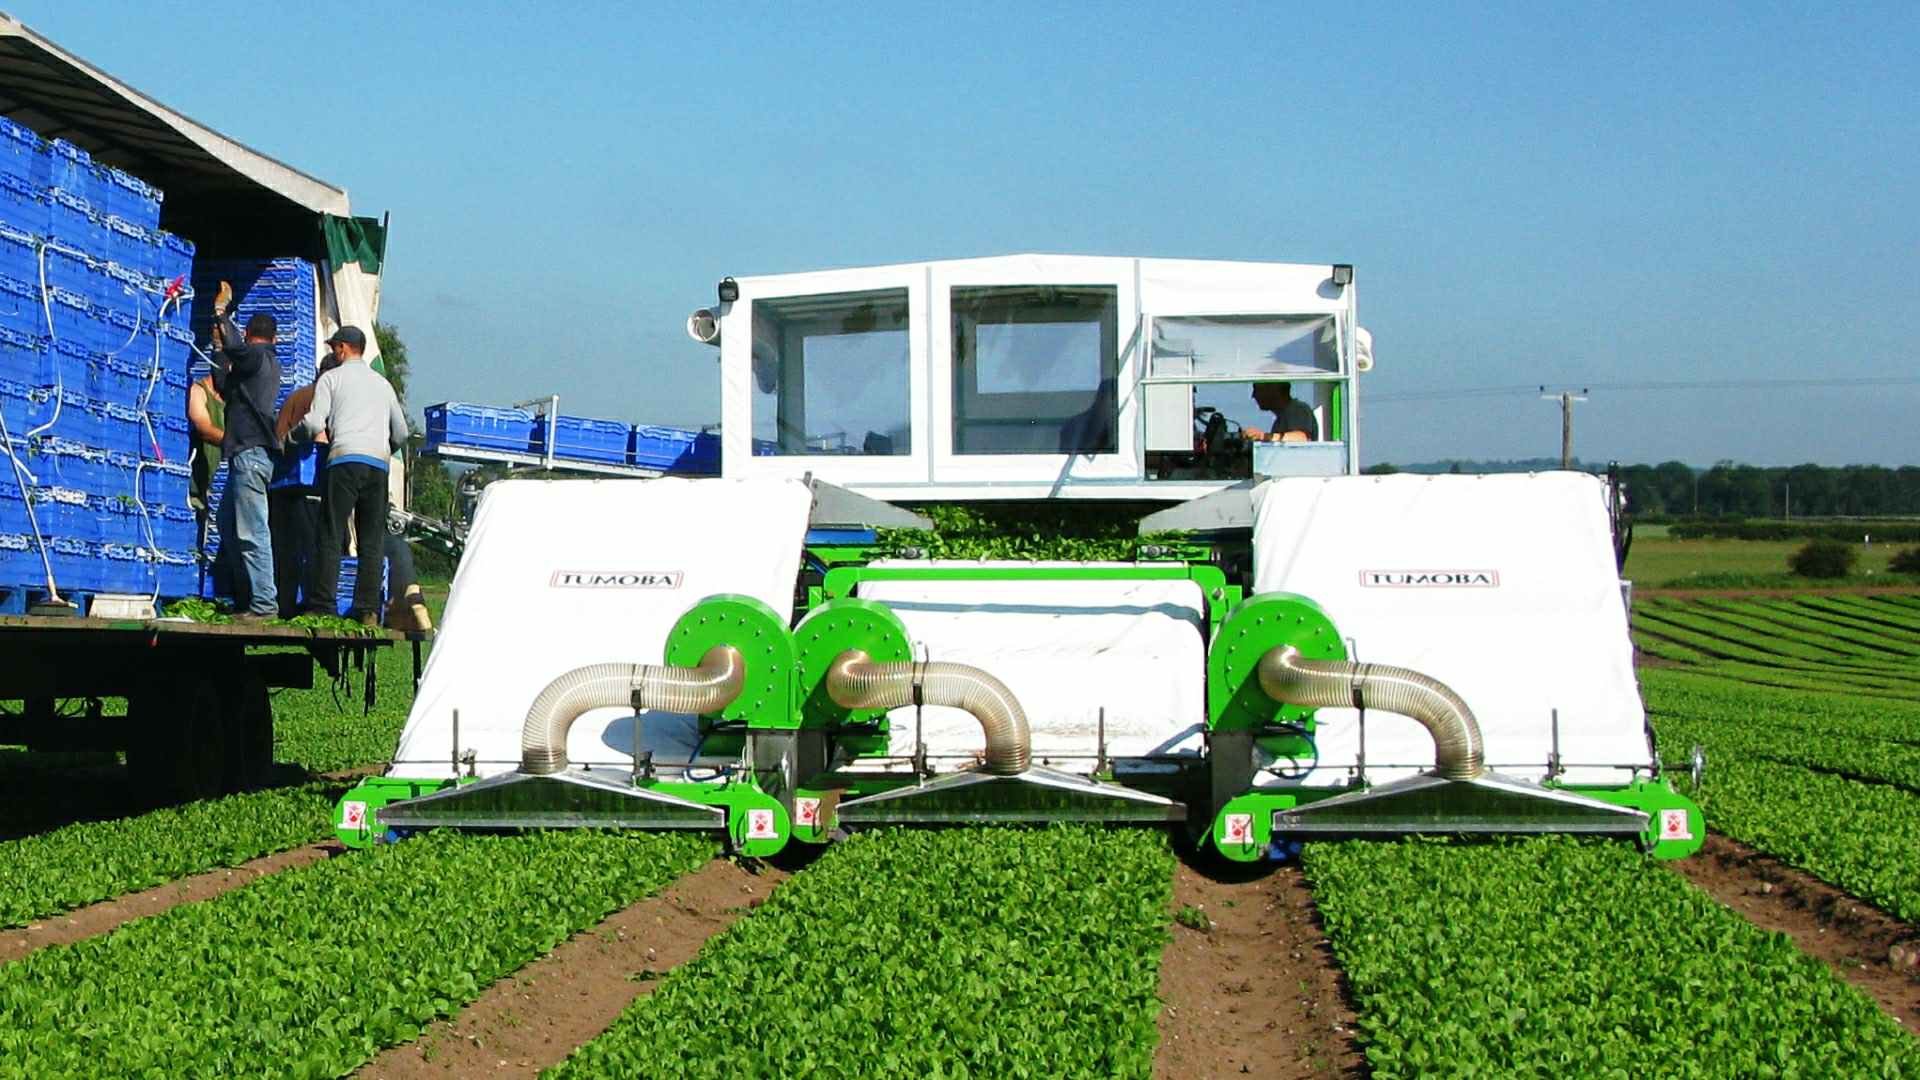 Burdens Group Limited Vegetable Machinery Division